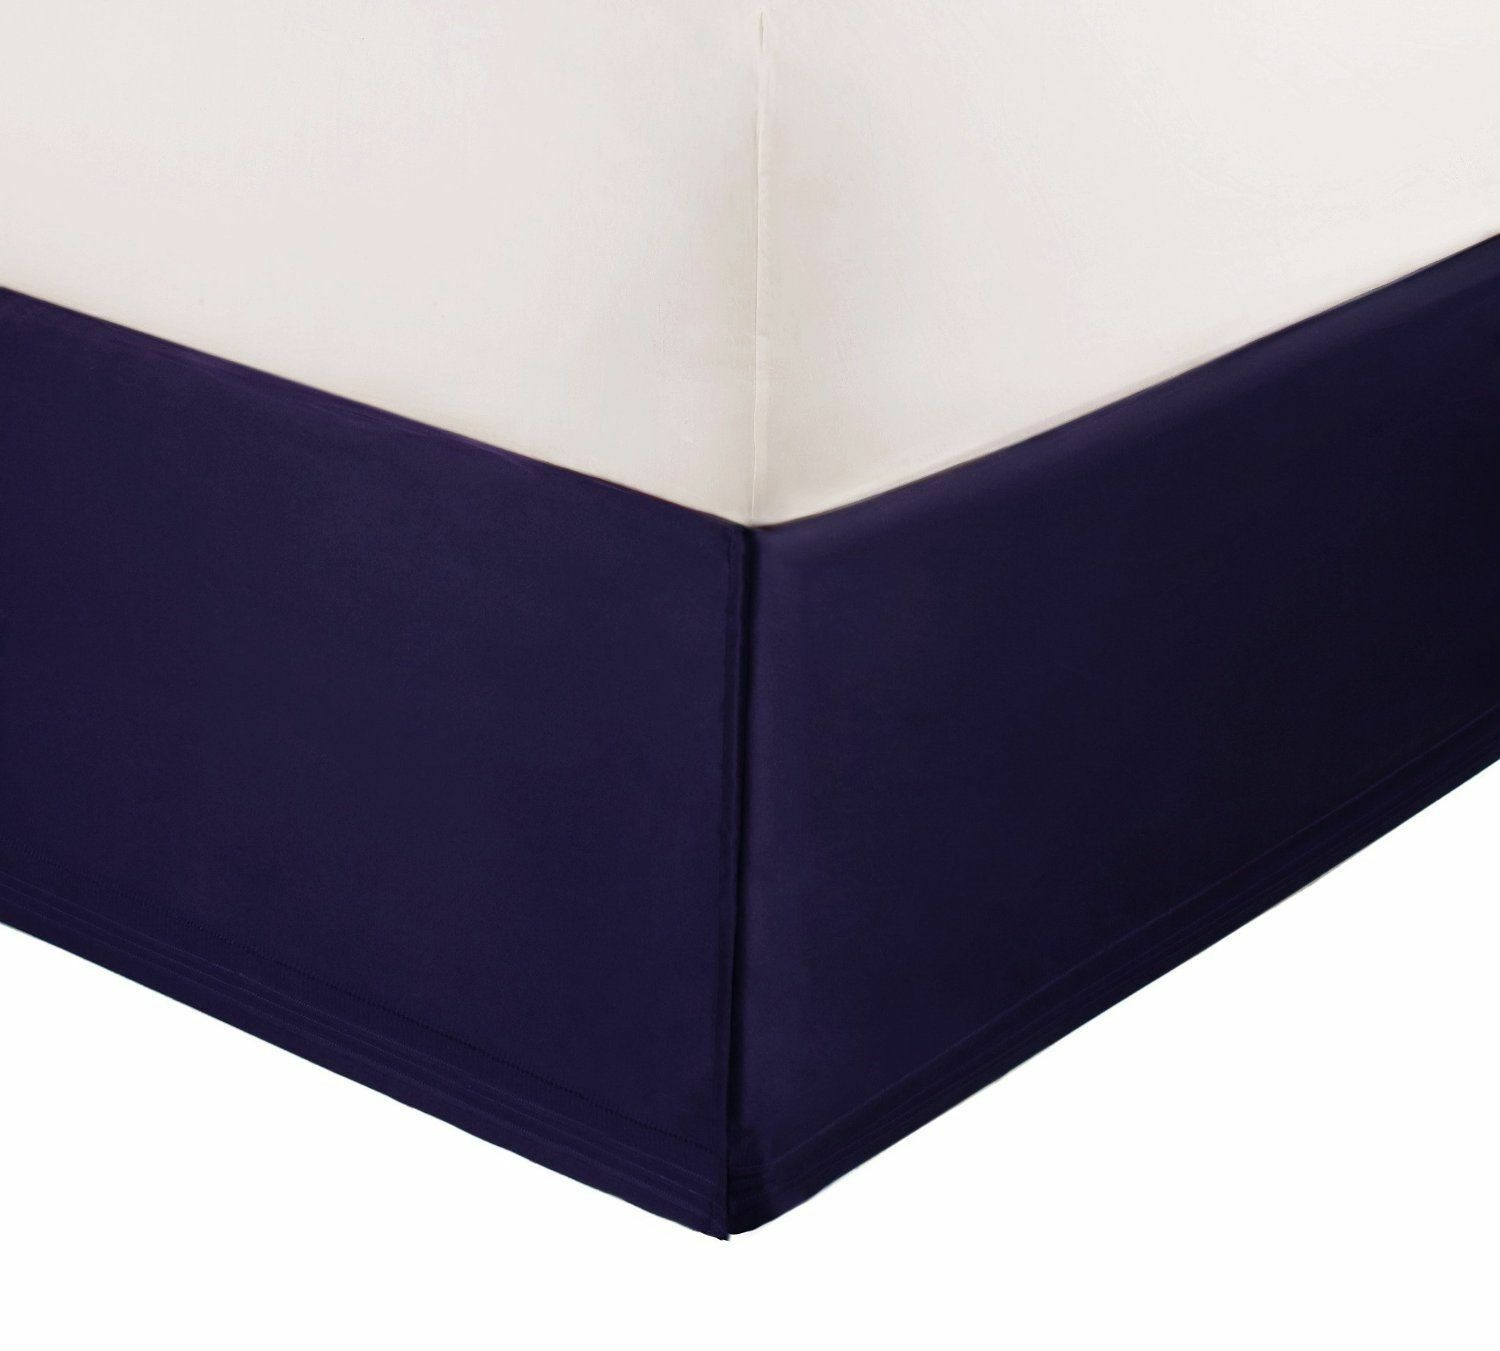 NEW Natori Imperial Palace SILK Purple CAL KING Bedskirt MSRP $240!